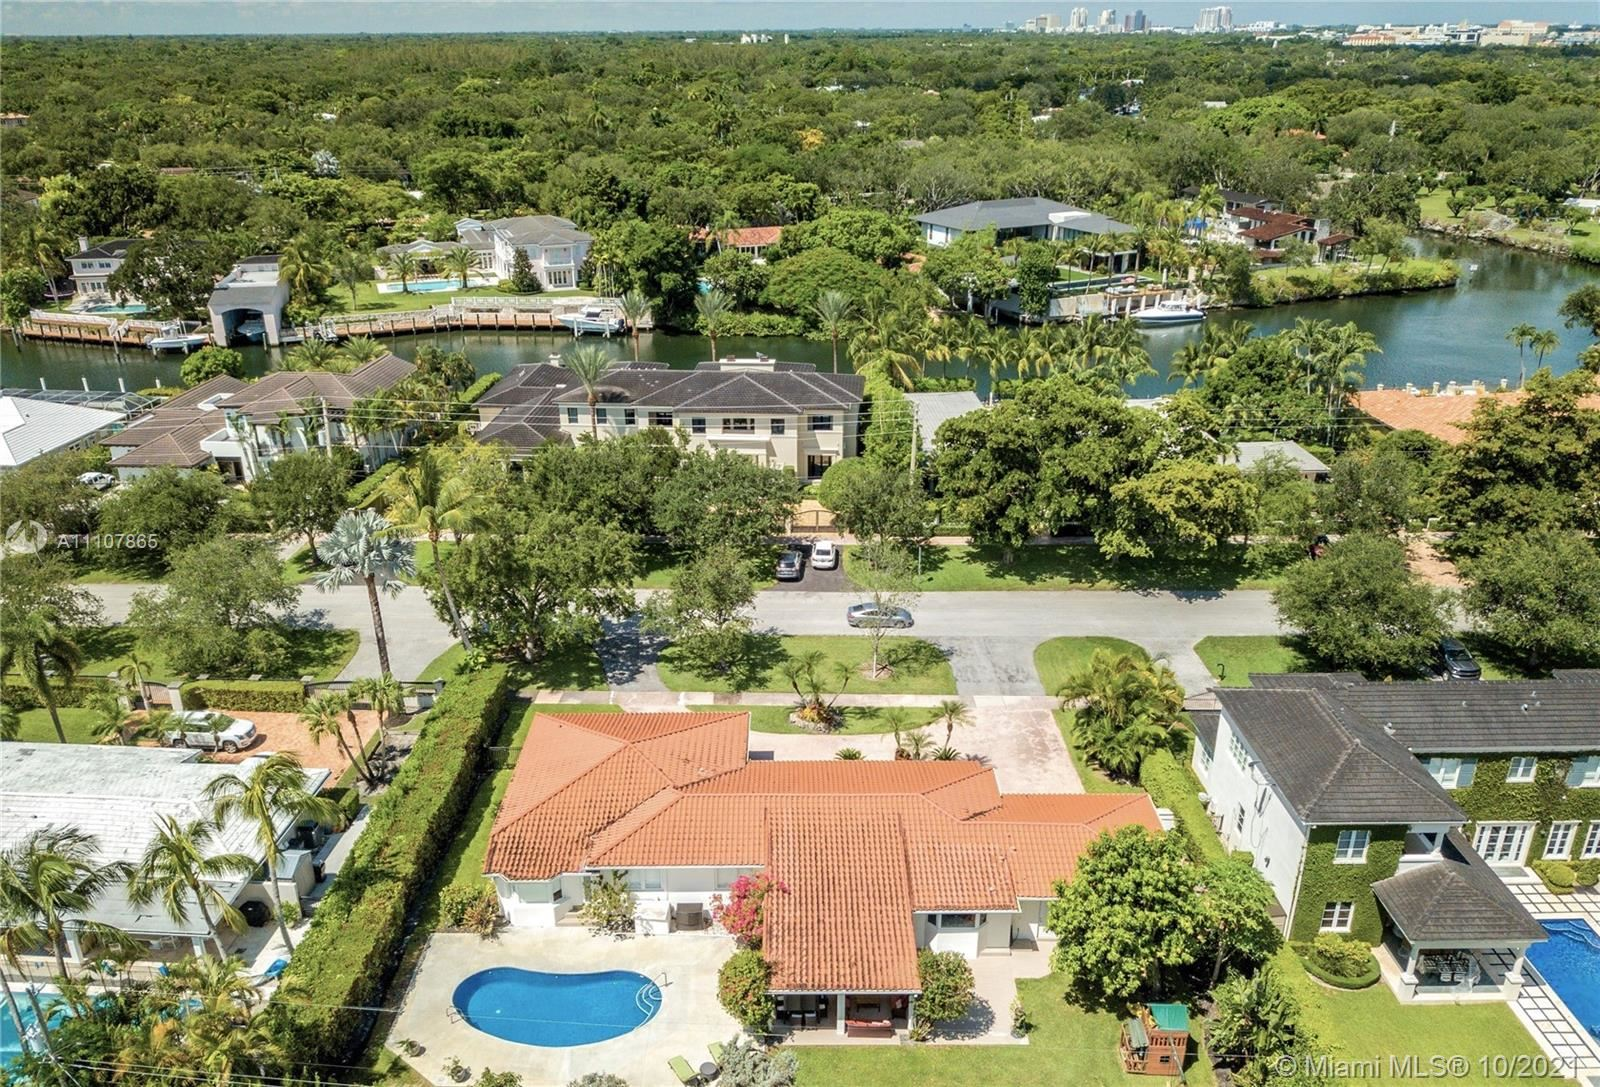 Photo of 6411 Riviera Drive, Coral Gables, FL 33146 (MLS # A11107865)